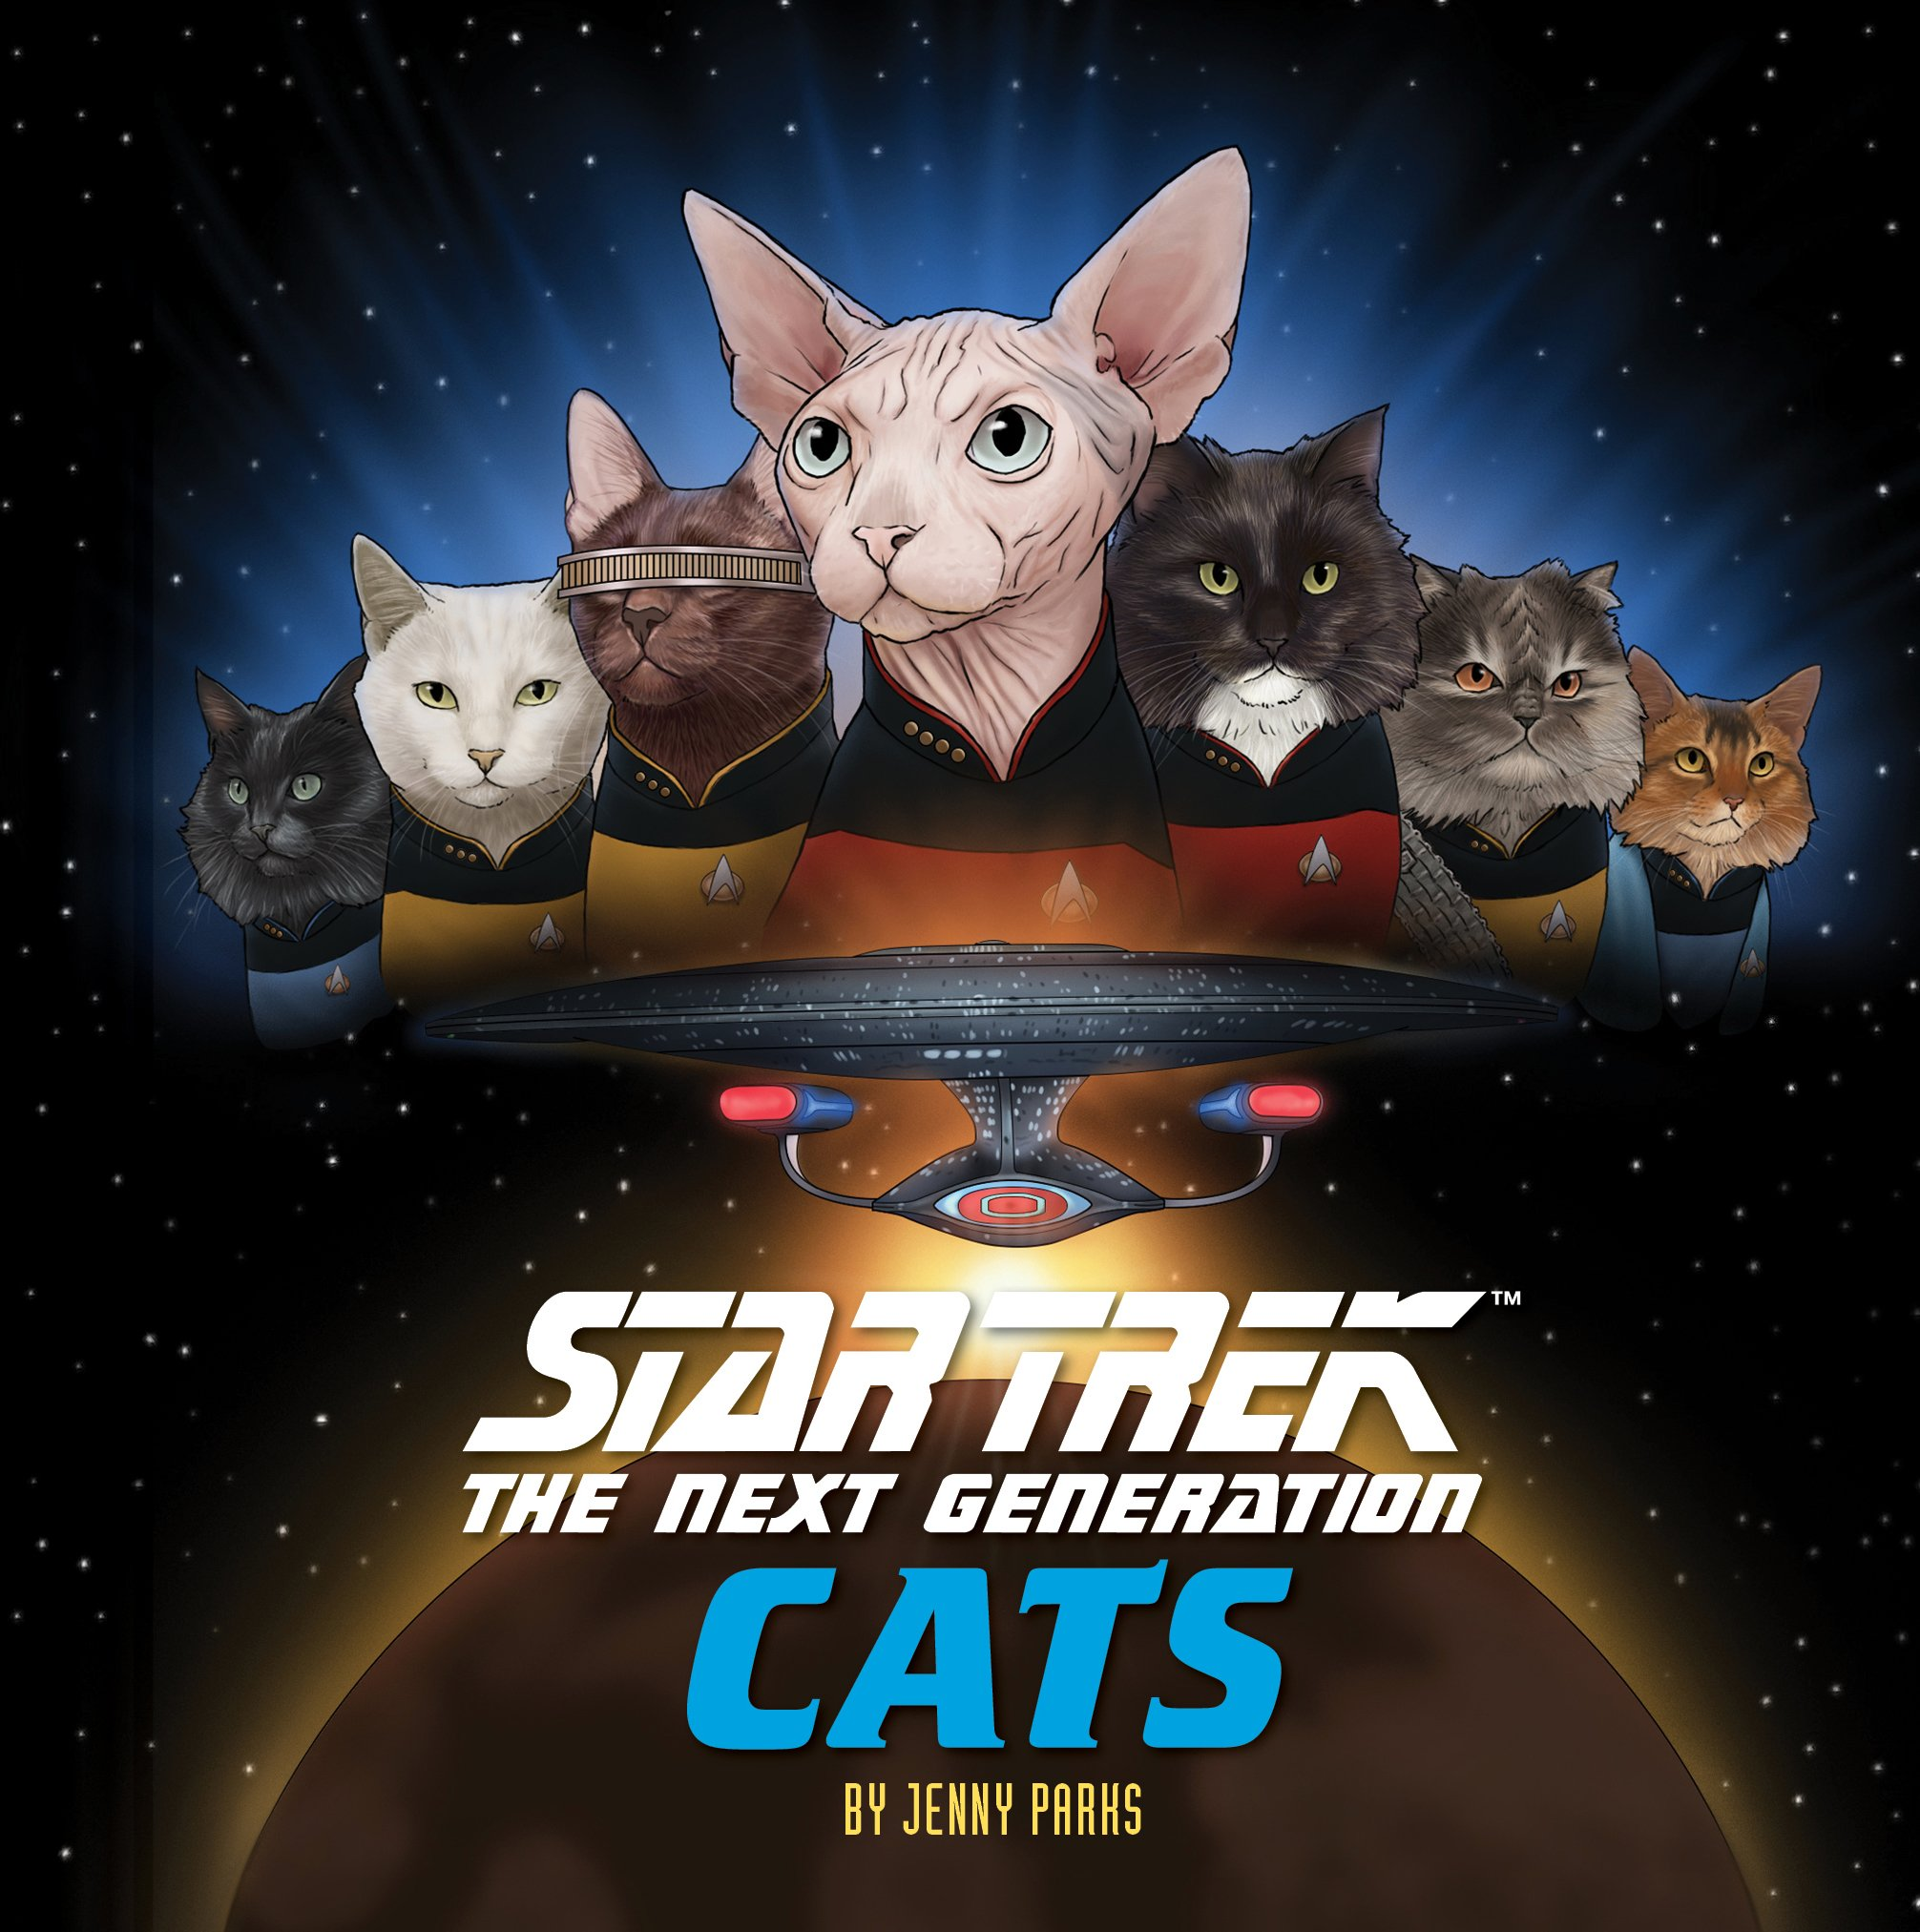 My second book, Star Trek: The Next Generation CATS is out now!  Available in bookstores and through these online stores:  For a signed copy, order here! -->    http://www.jennyparks.com/shop/star-trek-  tng-cats   Amazon:  https://www.amazon.com/Star-Trek-Next-Generation-Cats/dp/1452167621/   B&N:  https://www.barnesandnoble.com/w/star-trek-jenny-parks/1126794175   IndieBound:  https://www.indiebound.org/book/9781452167626       CANADA:    https://www.amazon.ca/Star-Trek-Next-Generation-Cats/dp/1452167621/    https://www.chapters.indigo.ca/en-ca/books/star-trek-the-next-generation/9781452167626-item.html    http://www.mcnallyrobinson.com/9781452167626/jenny-parks/star-trek       UK:    https://www.amazon.co.uk/Star-Trek-Next-Generation-Cats/dp/1452167621/      The cats are back in their continuing mission: to boldly go where no one has gone before. This companion to the bestselling  Star Trek Cats  brings the many adventures of  Star Trek: The Next Generation  to life in a faithfully feline homage to the hit series. From encounters with the Borg to adventures on the holodeck, Captain Picard and the rest of the  U.S.S. Enterprise  NCC-1701-D crew are reimagined as cats with lovingly detailed and eyebrow-raising scenes from throughout the award-winning series, perfect for  Star Trek  fans across the Galaxy.  TM & © 2018 CBS Studios Inc. STAR TREK and related marks and logos are trademarks of CBS Studios Inc. All Rights Reserved.